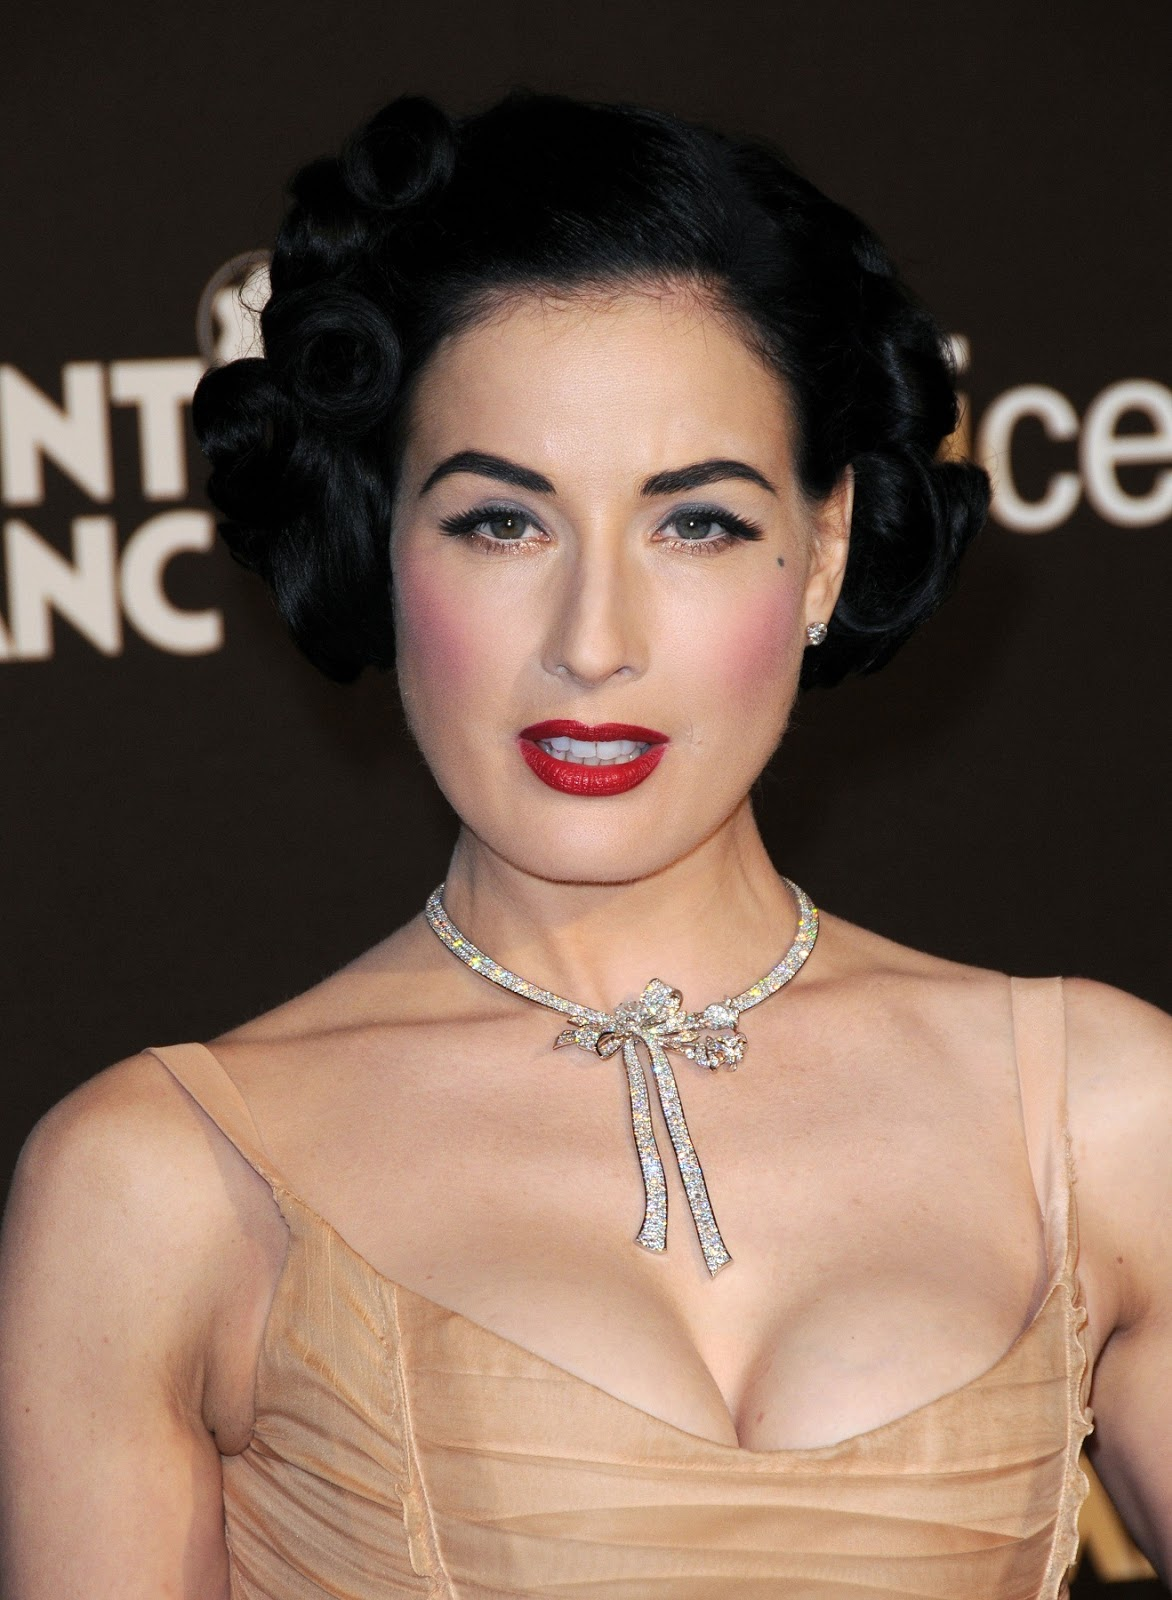 Dita Von Teese Hot Hd Wallpapers High Resolution Pictures